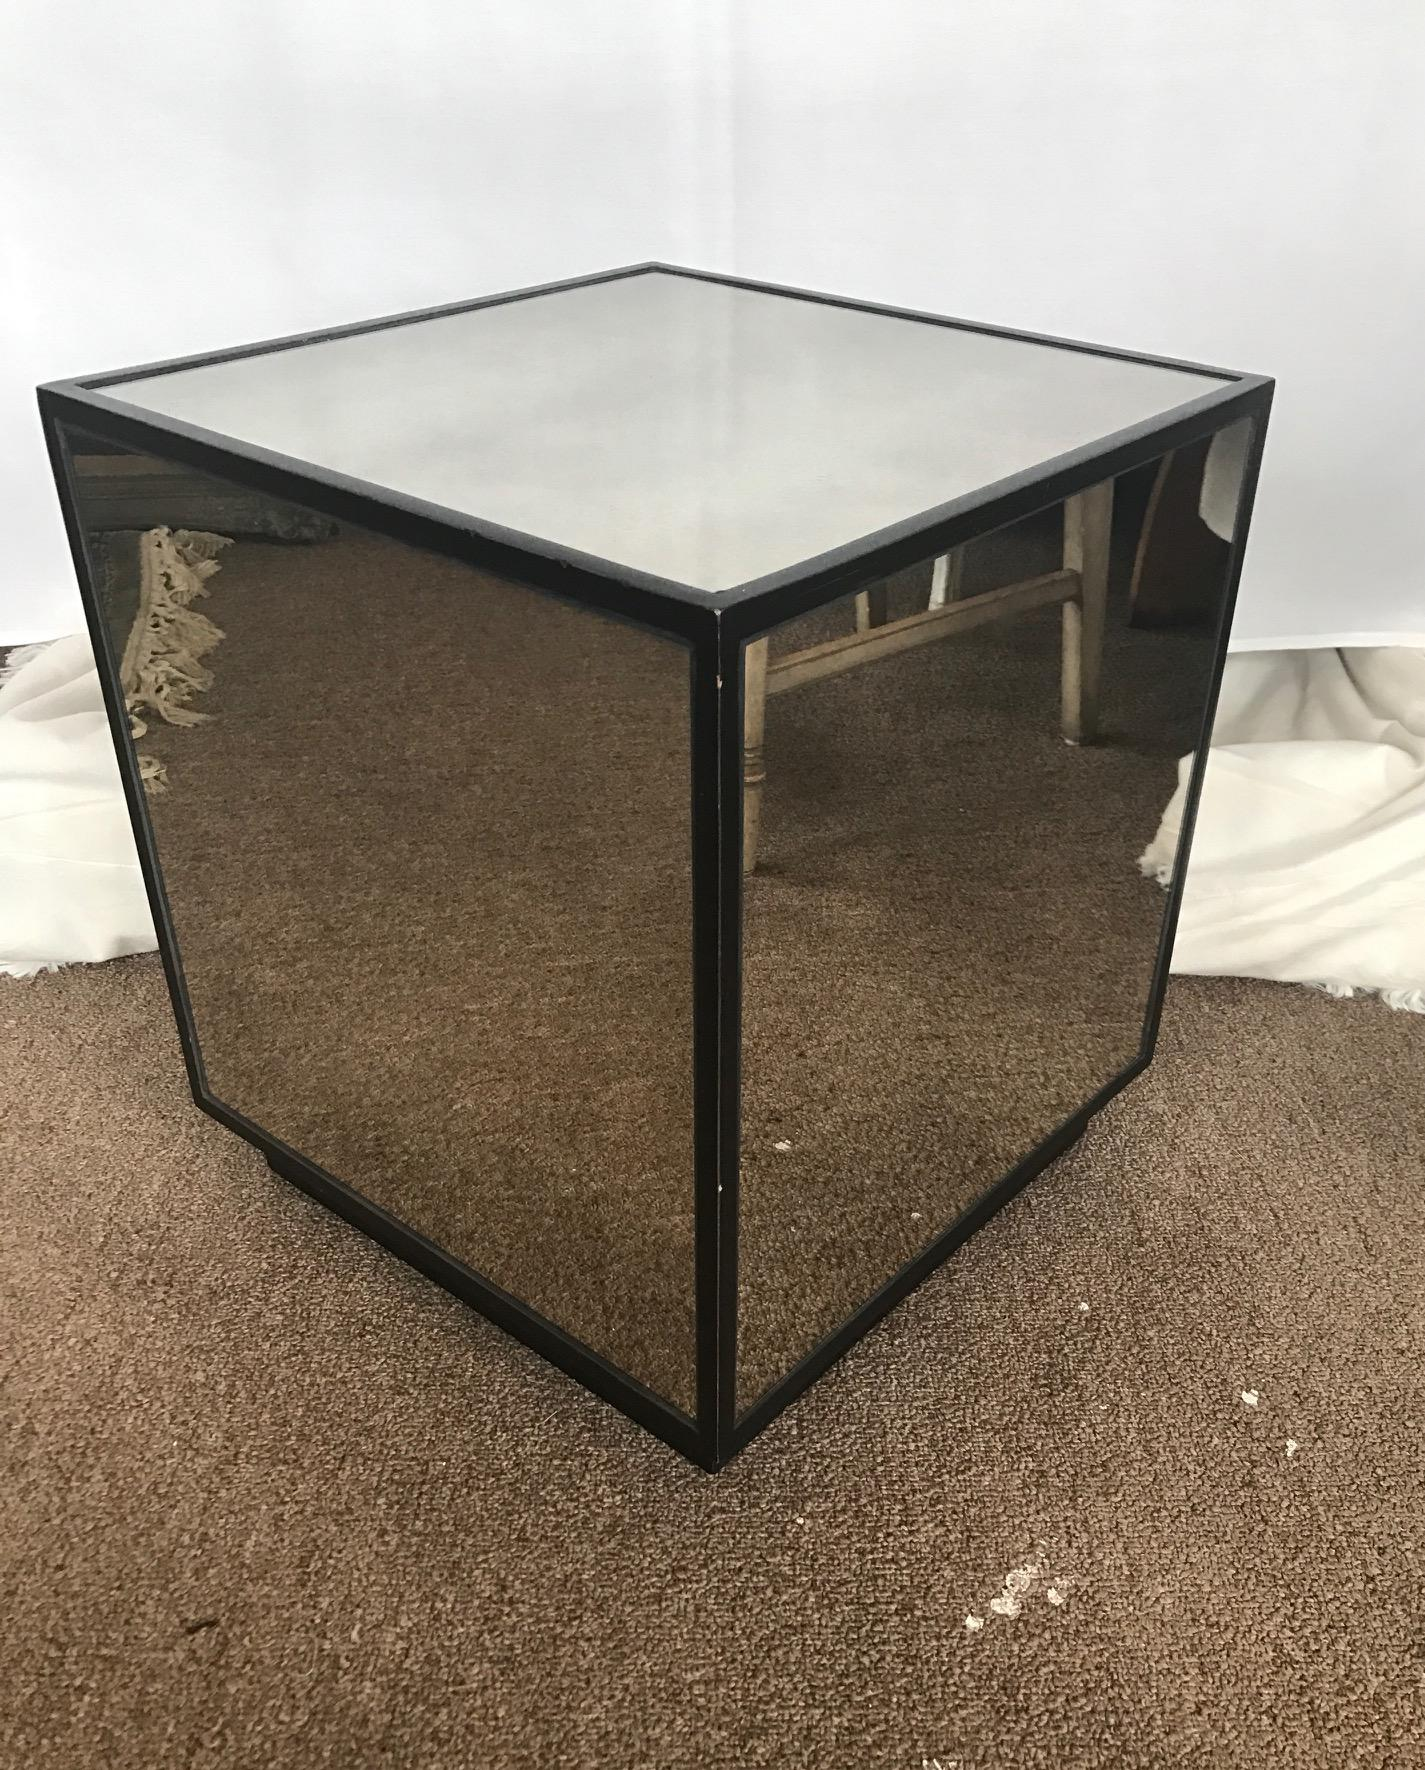 Ralph Lauren Style Mirrored Smokey Glass Cube Table End Table   Image 2 Of 6